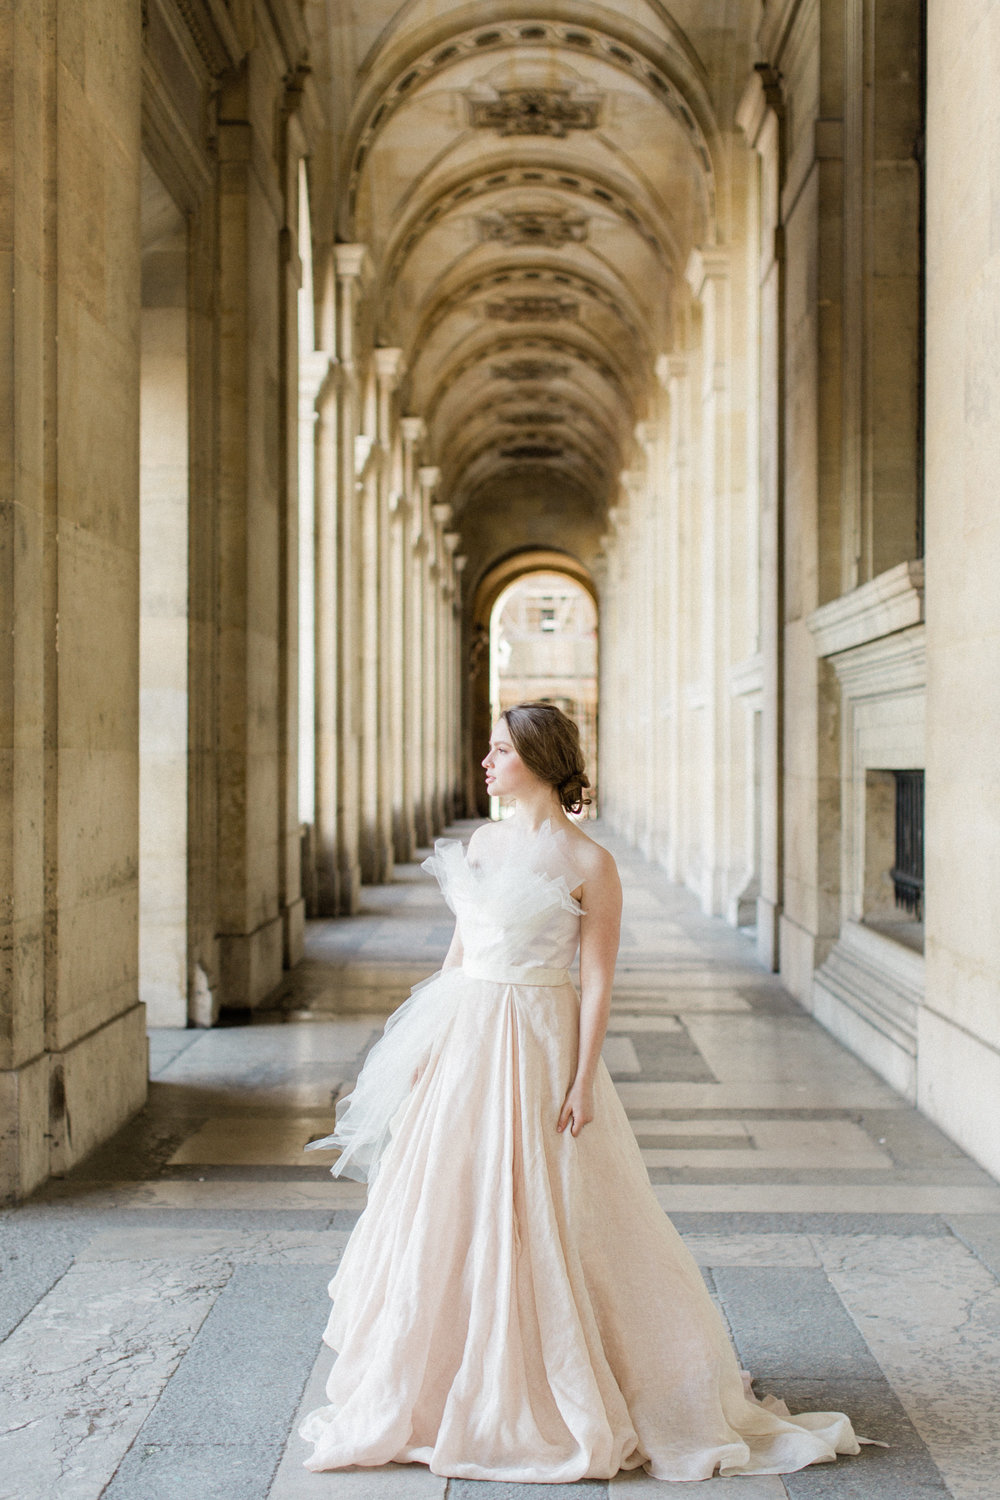 Grand palais wedding gown blush and tulle9.jpg